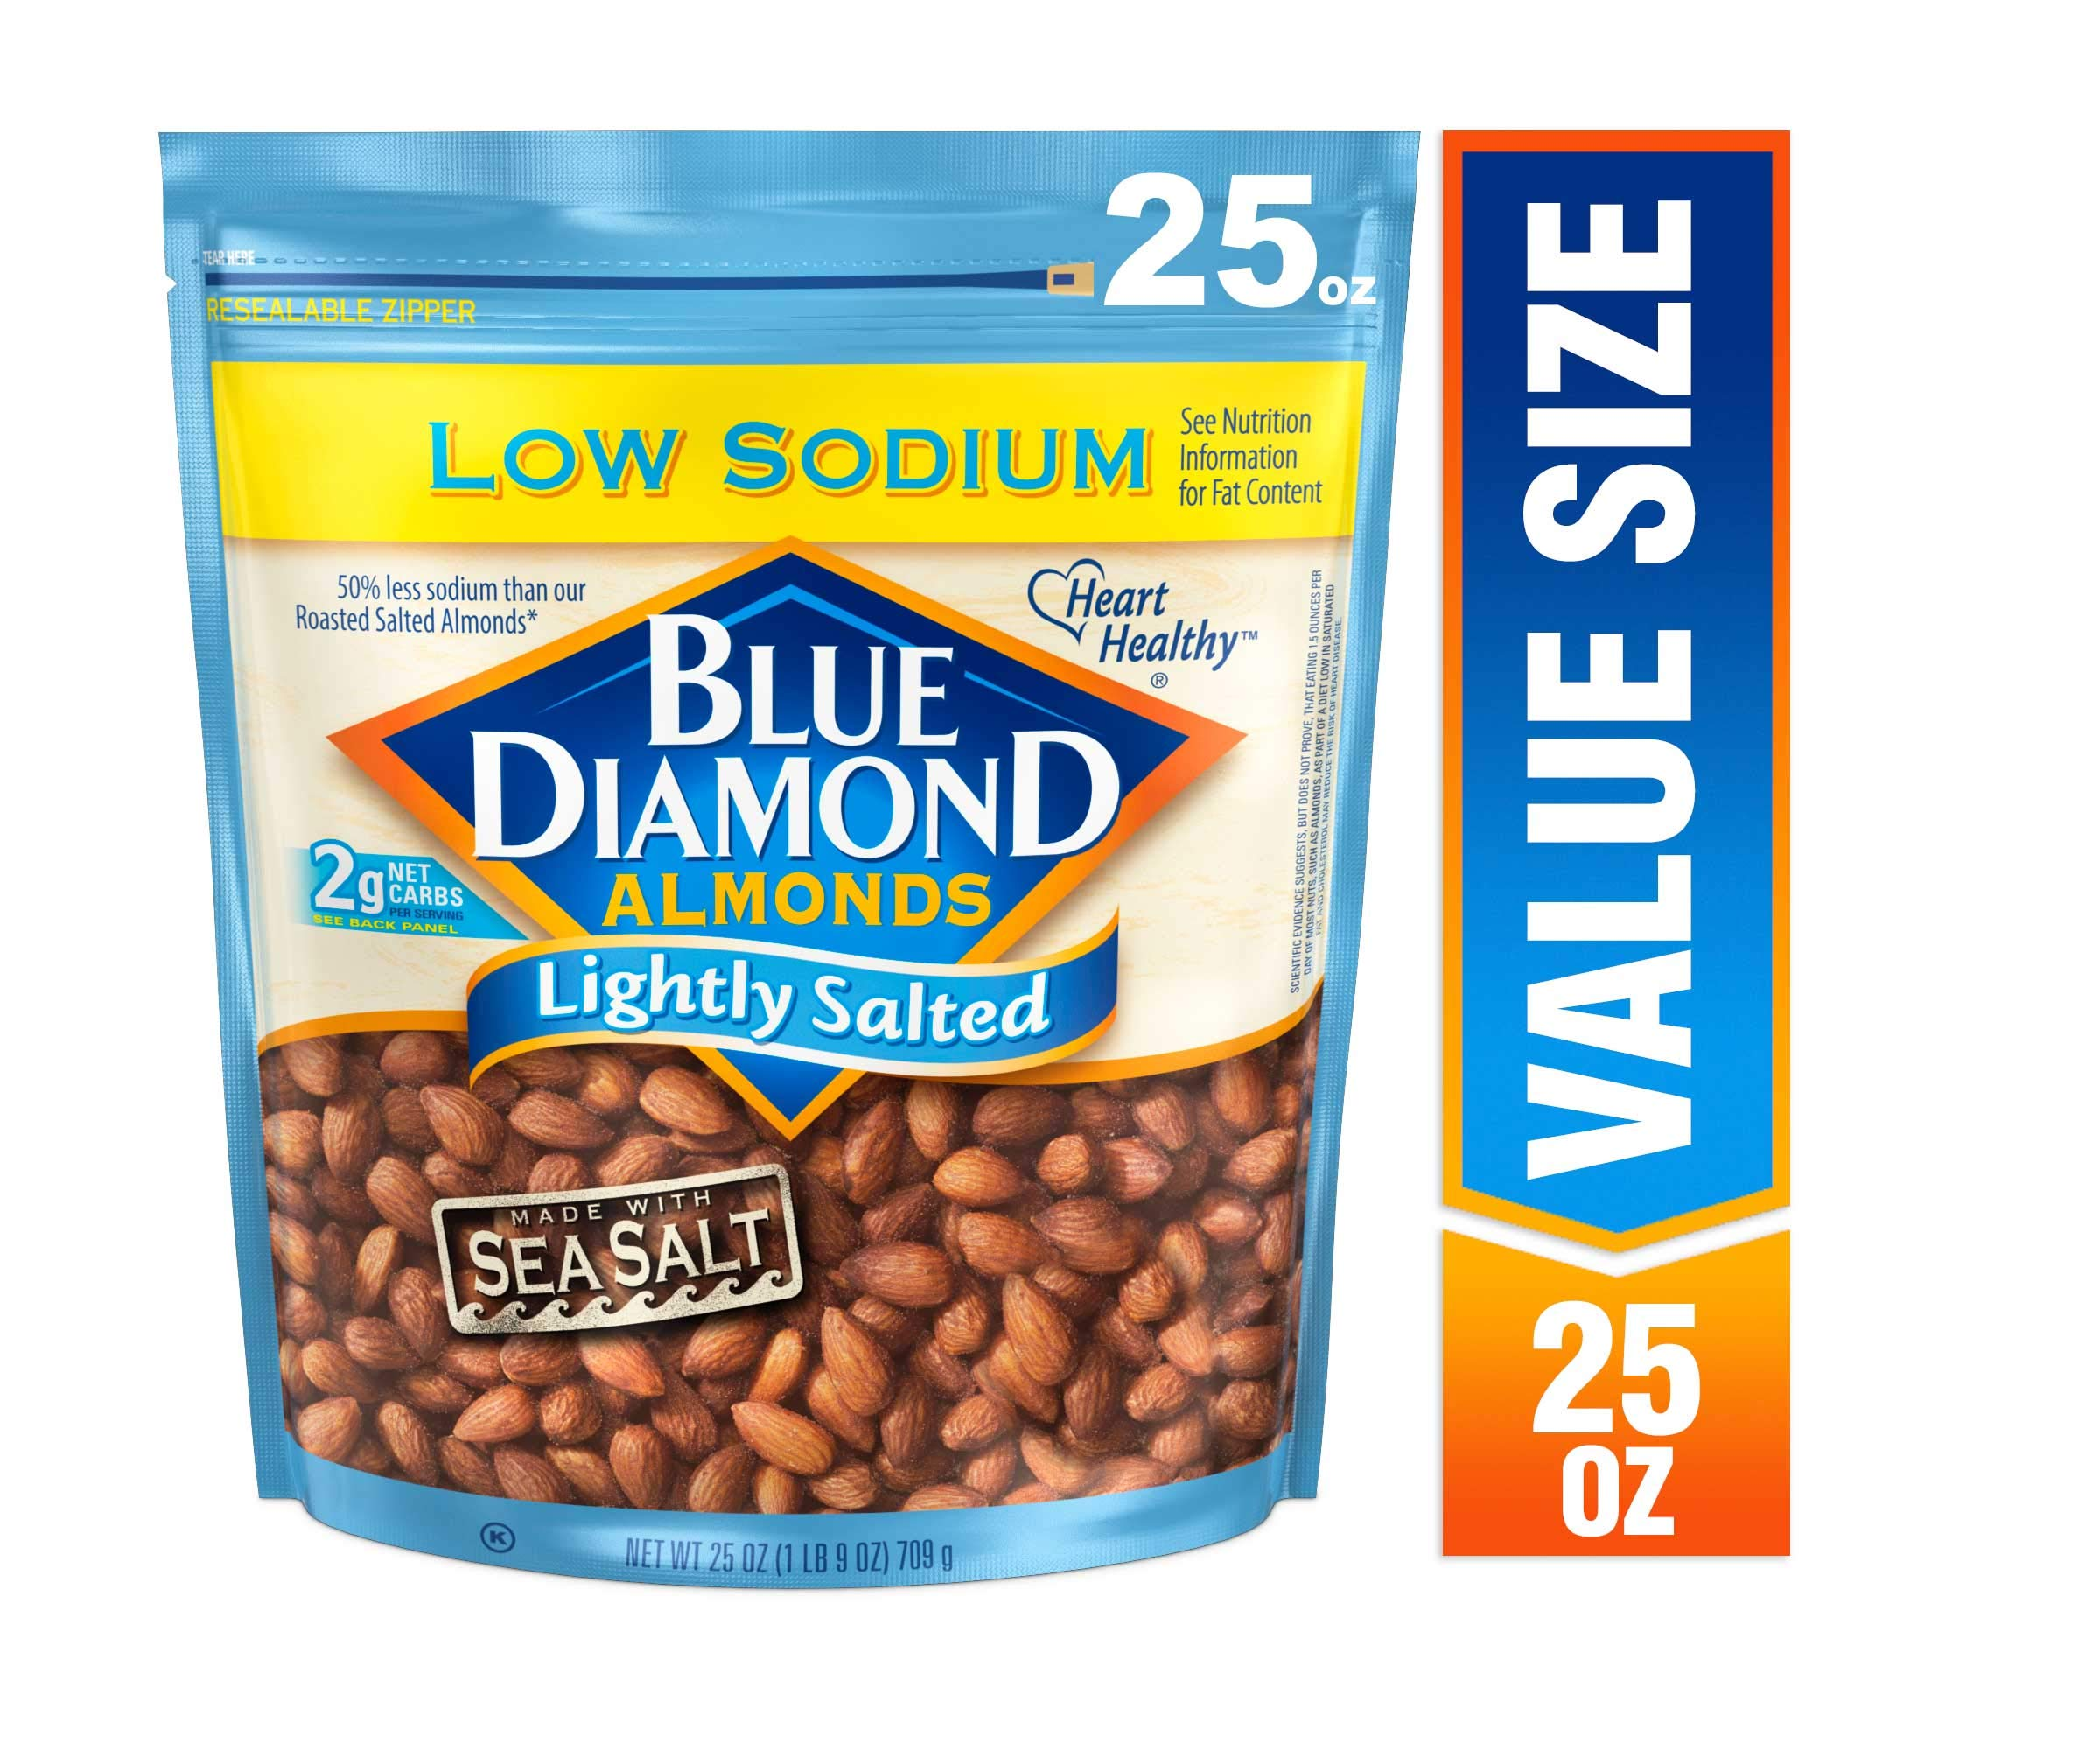 Blue Diamond Almonds, Low Sodium Lightly Salted, 25 Ounce by Blue Diamond Almonds